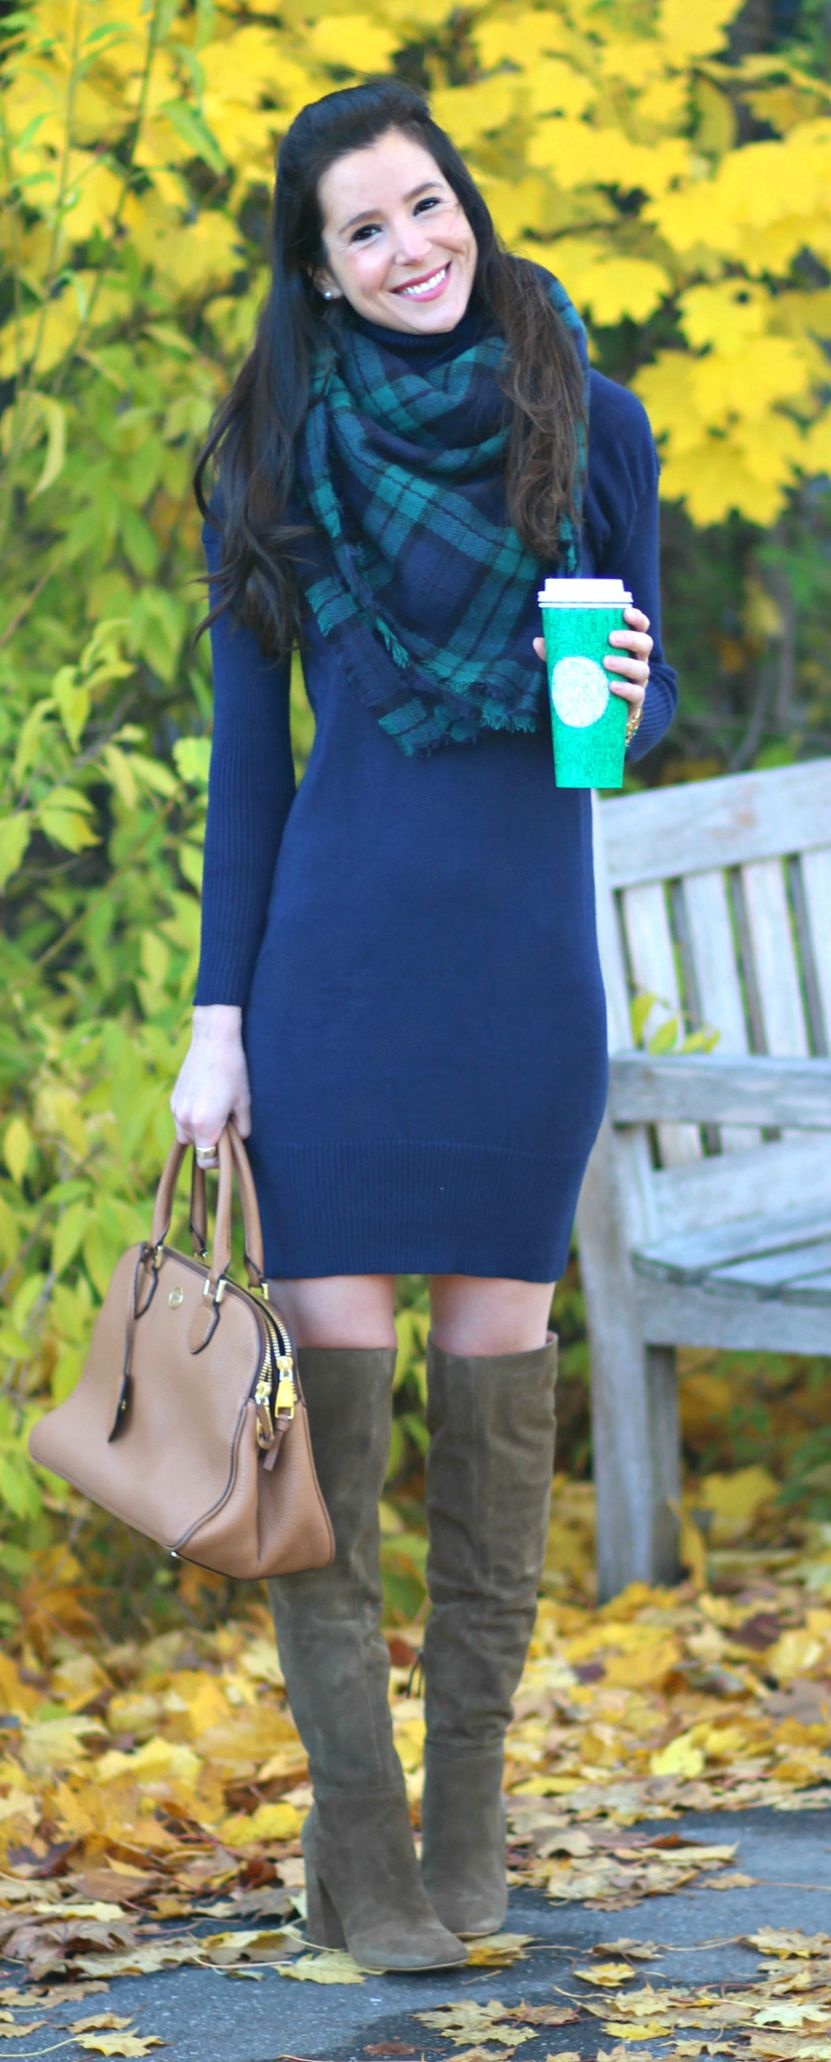 fe15b0ab2d0 Cute fall outfit idea for young women! Navy blue turtleneck sweater dress